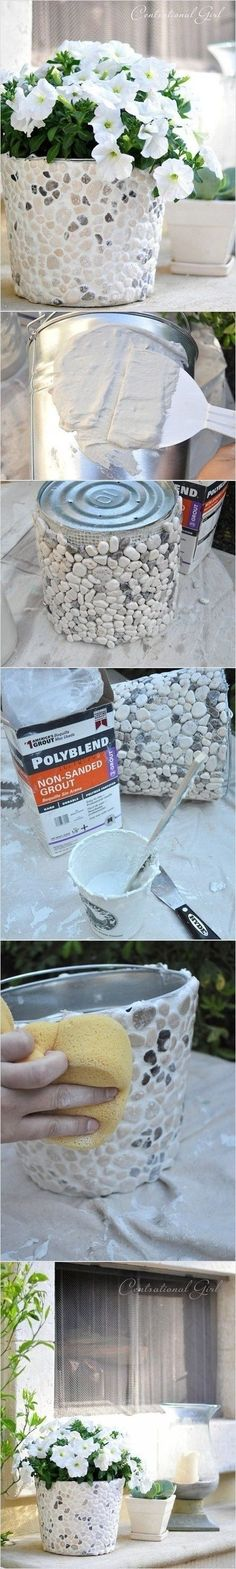 DIY Stone Pots from paint buckets DIY Macetero decorado con piedras Fun Crafts, Diy And Crafts, Creative Crafts, Creation Deco, Ideias Diy, Crafty Craft, Outdoor Projects, Outdoor Decor, Garden Projects